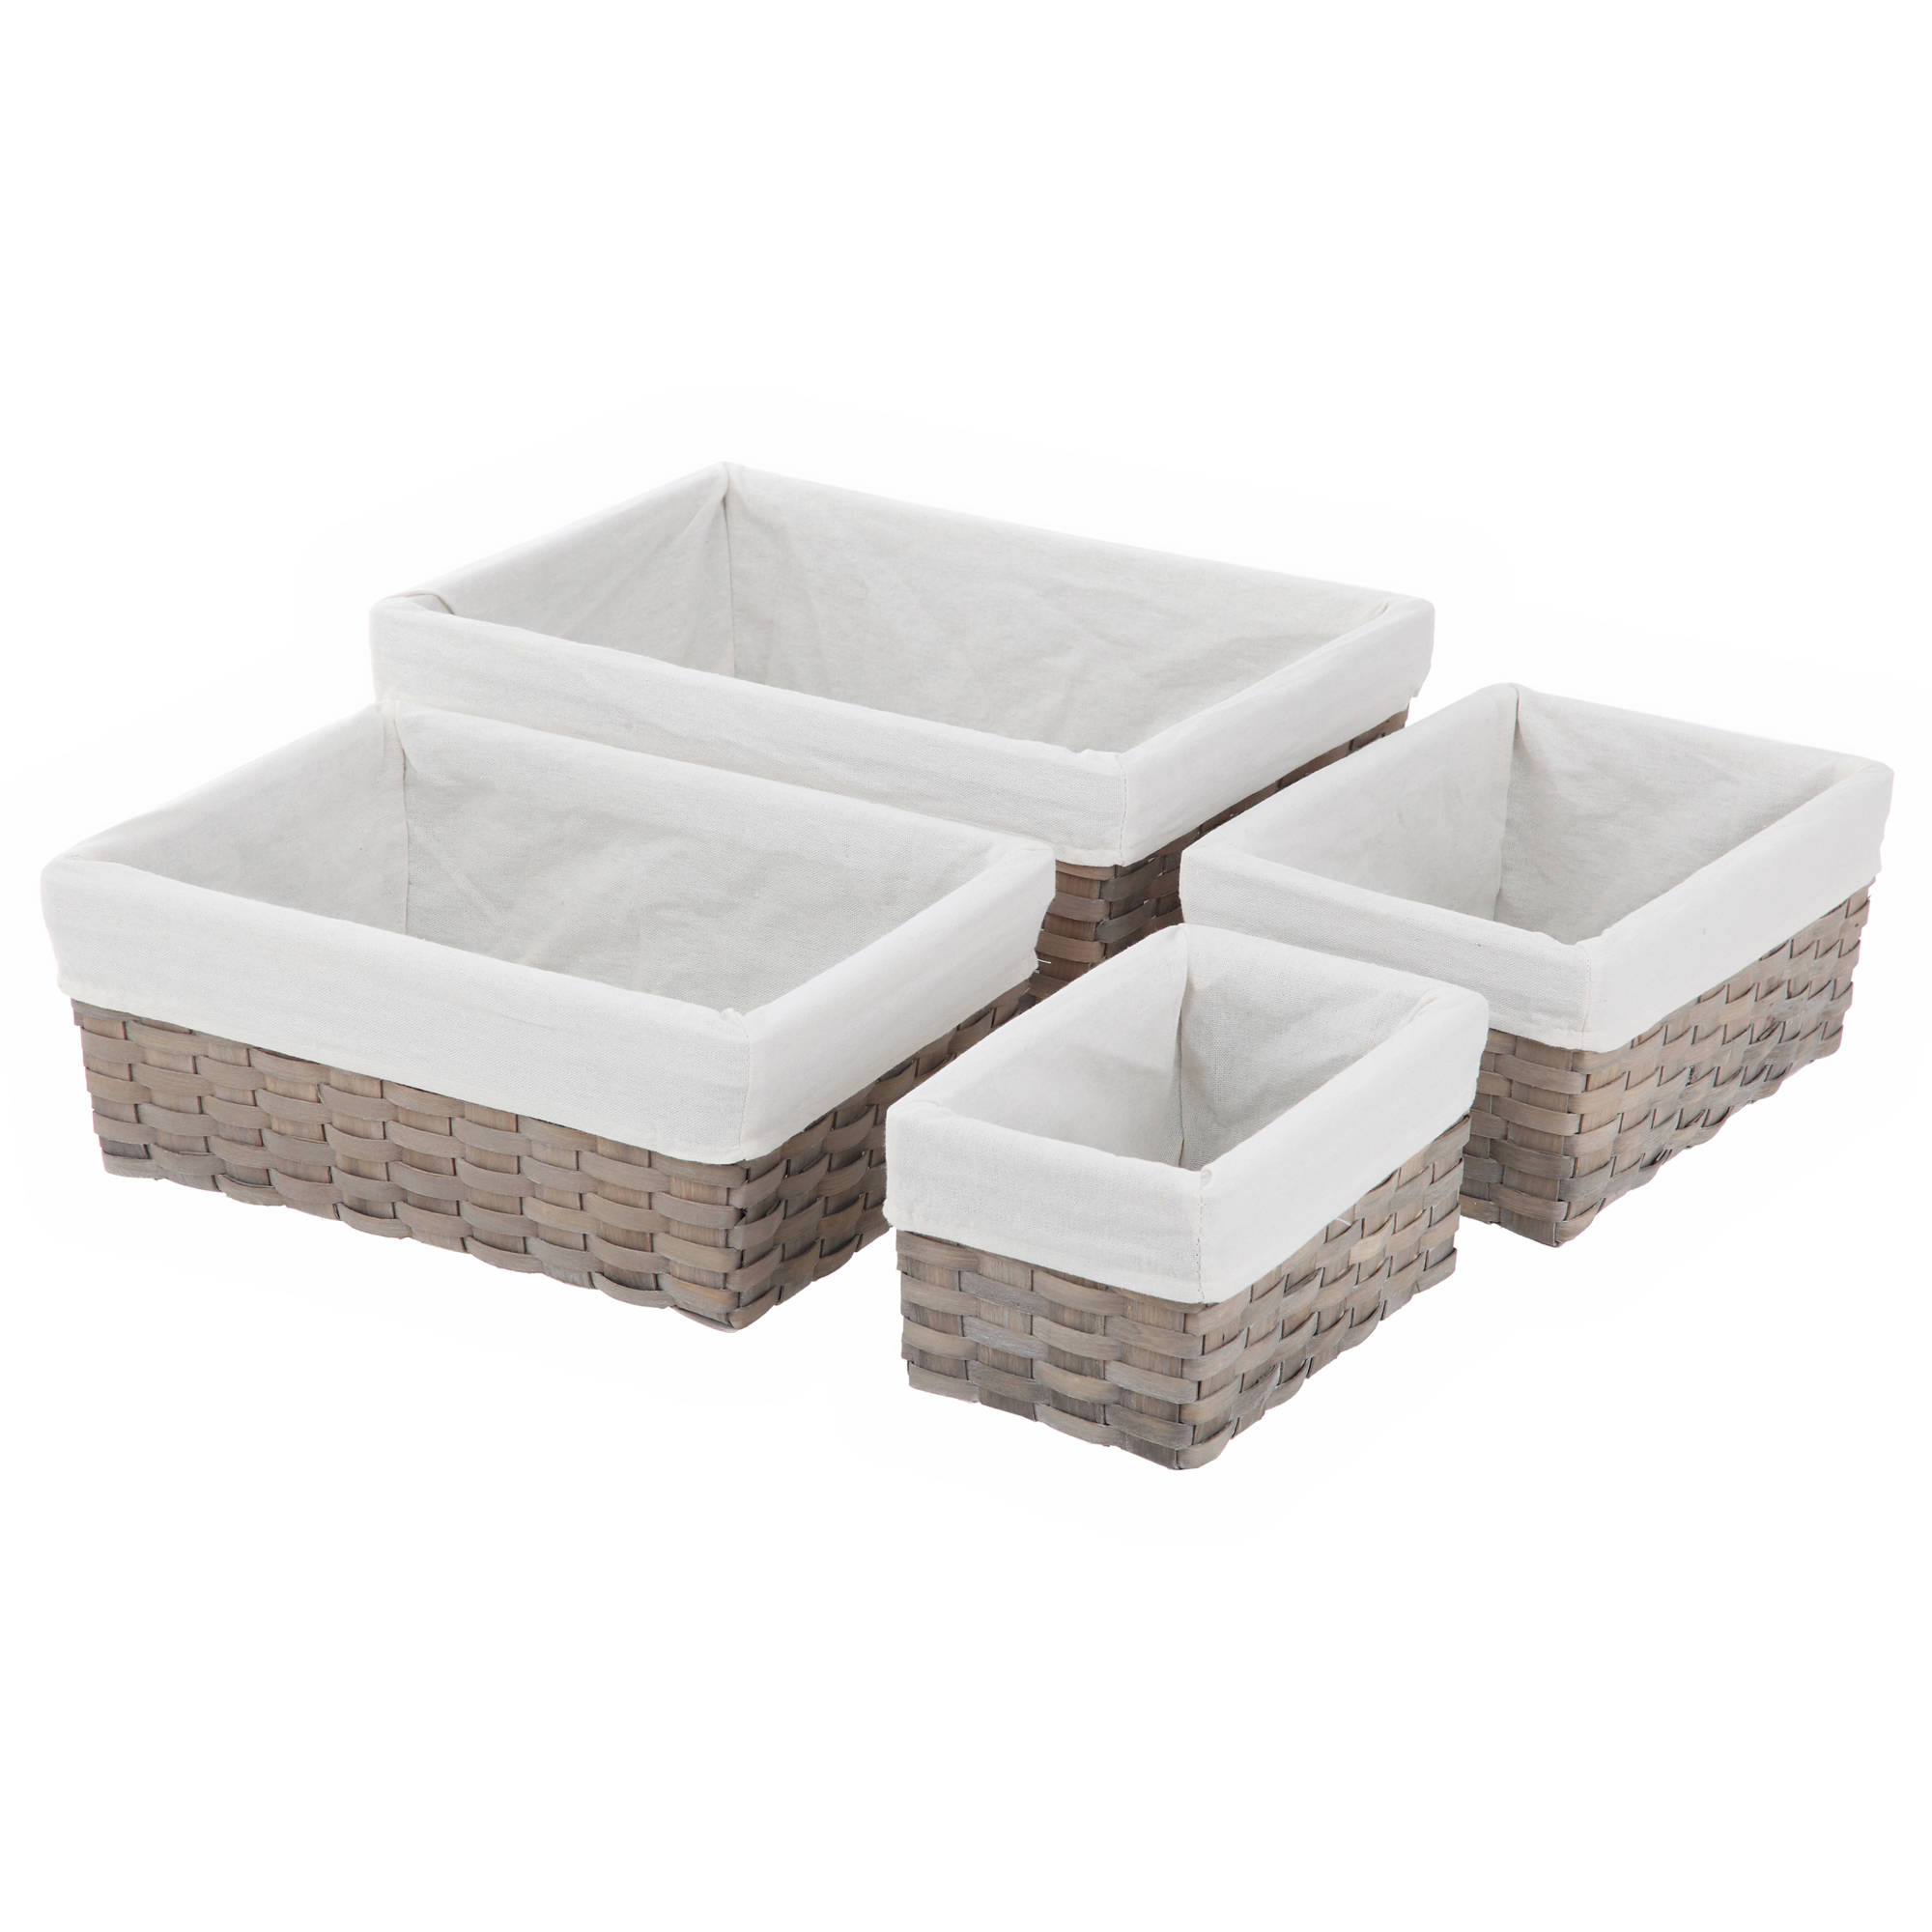 Woven Wood Basket Set, Multiple Colors, 4-Piece Set